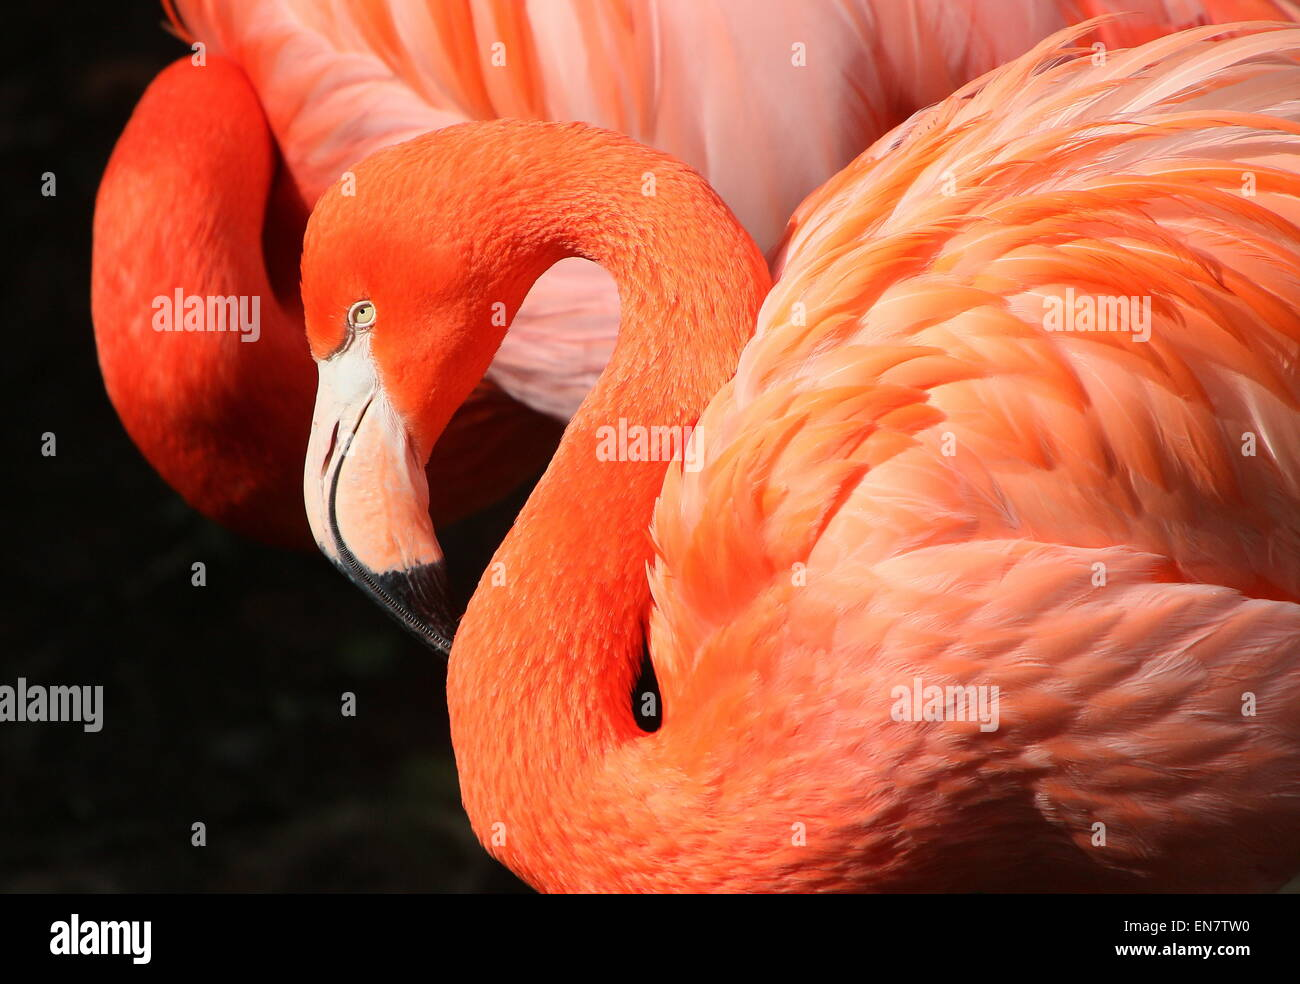 American or Caribbean flamingo ( Phoenicopterus ruber), closeup of the head, another one in the background - Stock Image